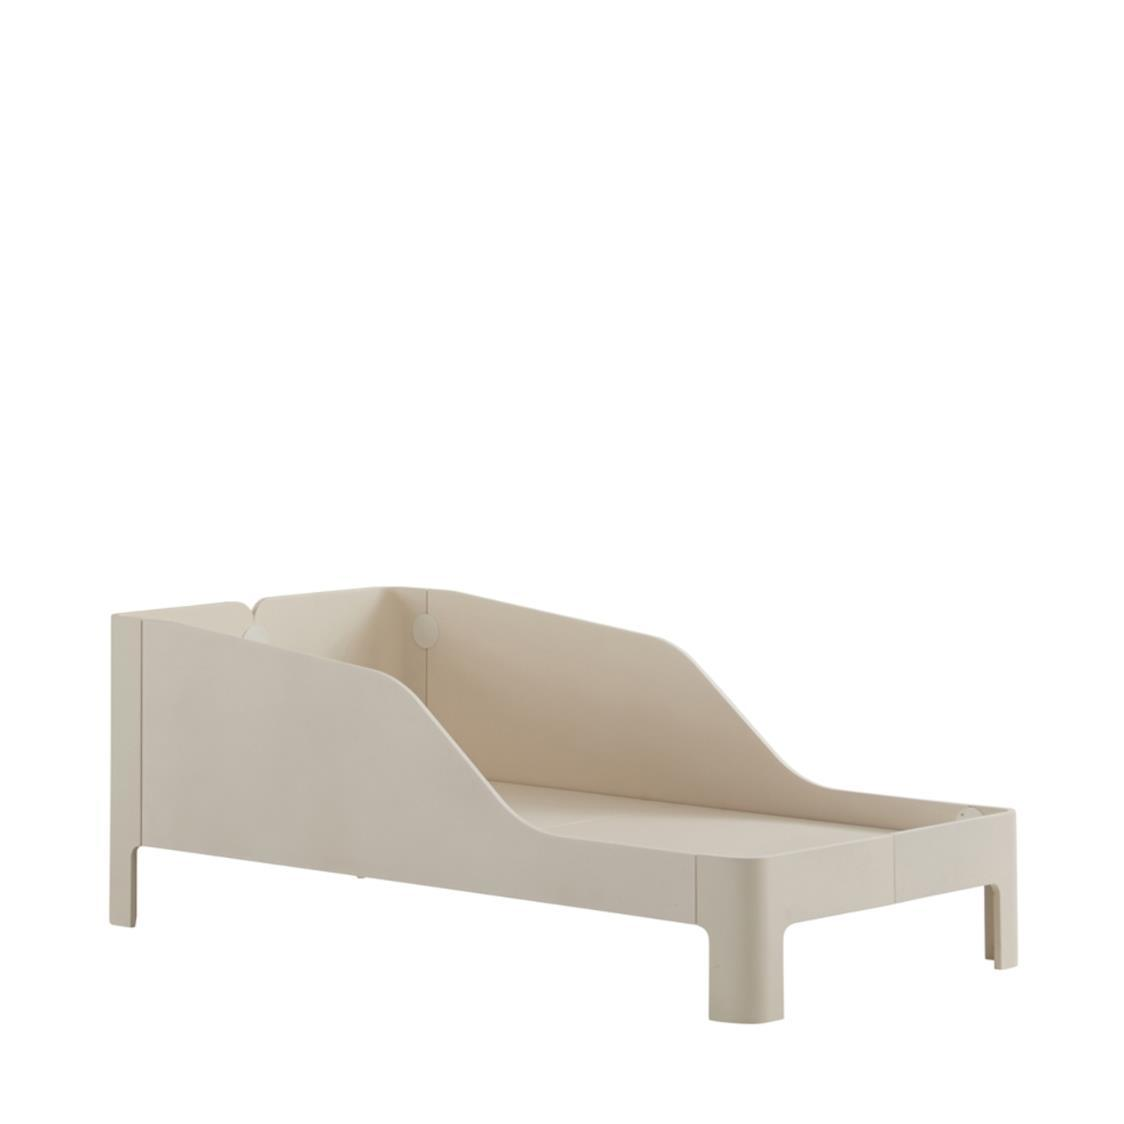 Tinkle Pop 1 Story Bed IV Ivory